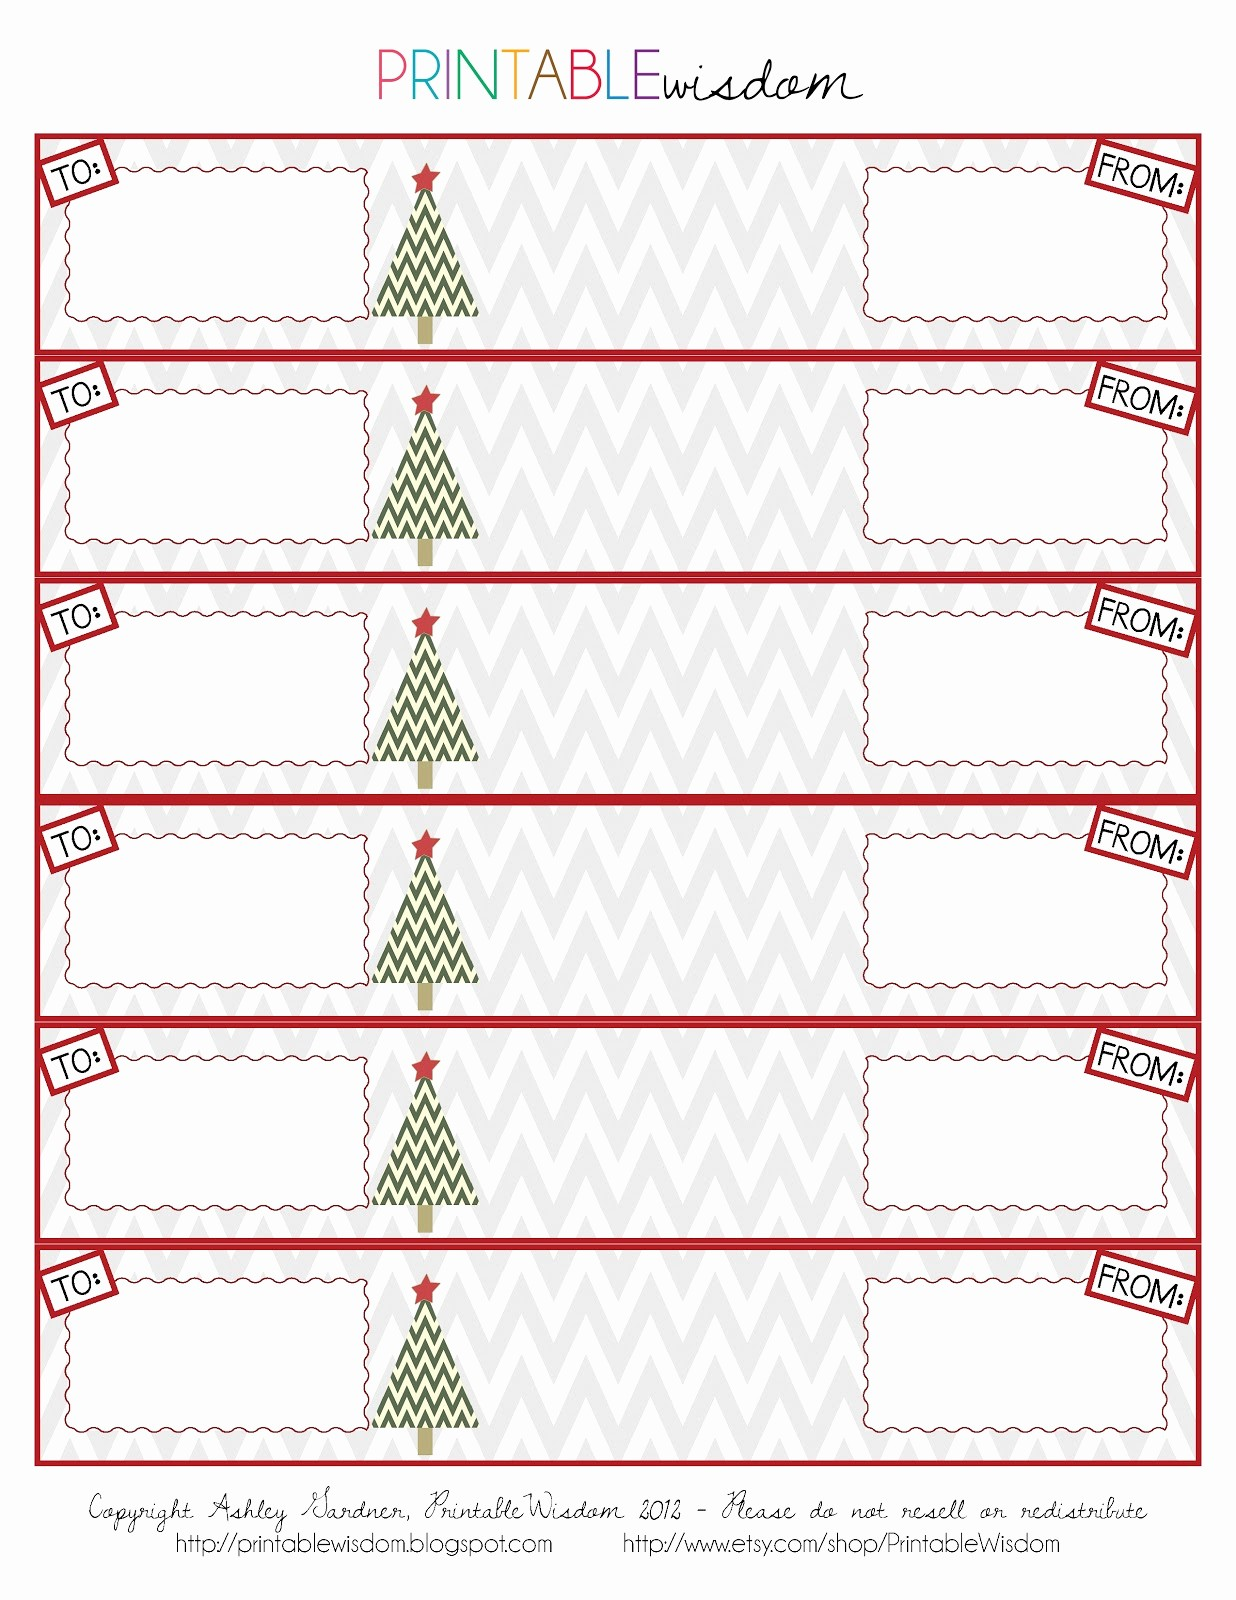 Free Printable Christmas Mailing Labels Luxury Free Printable Christmas Address Labels – Happy Holidays